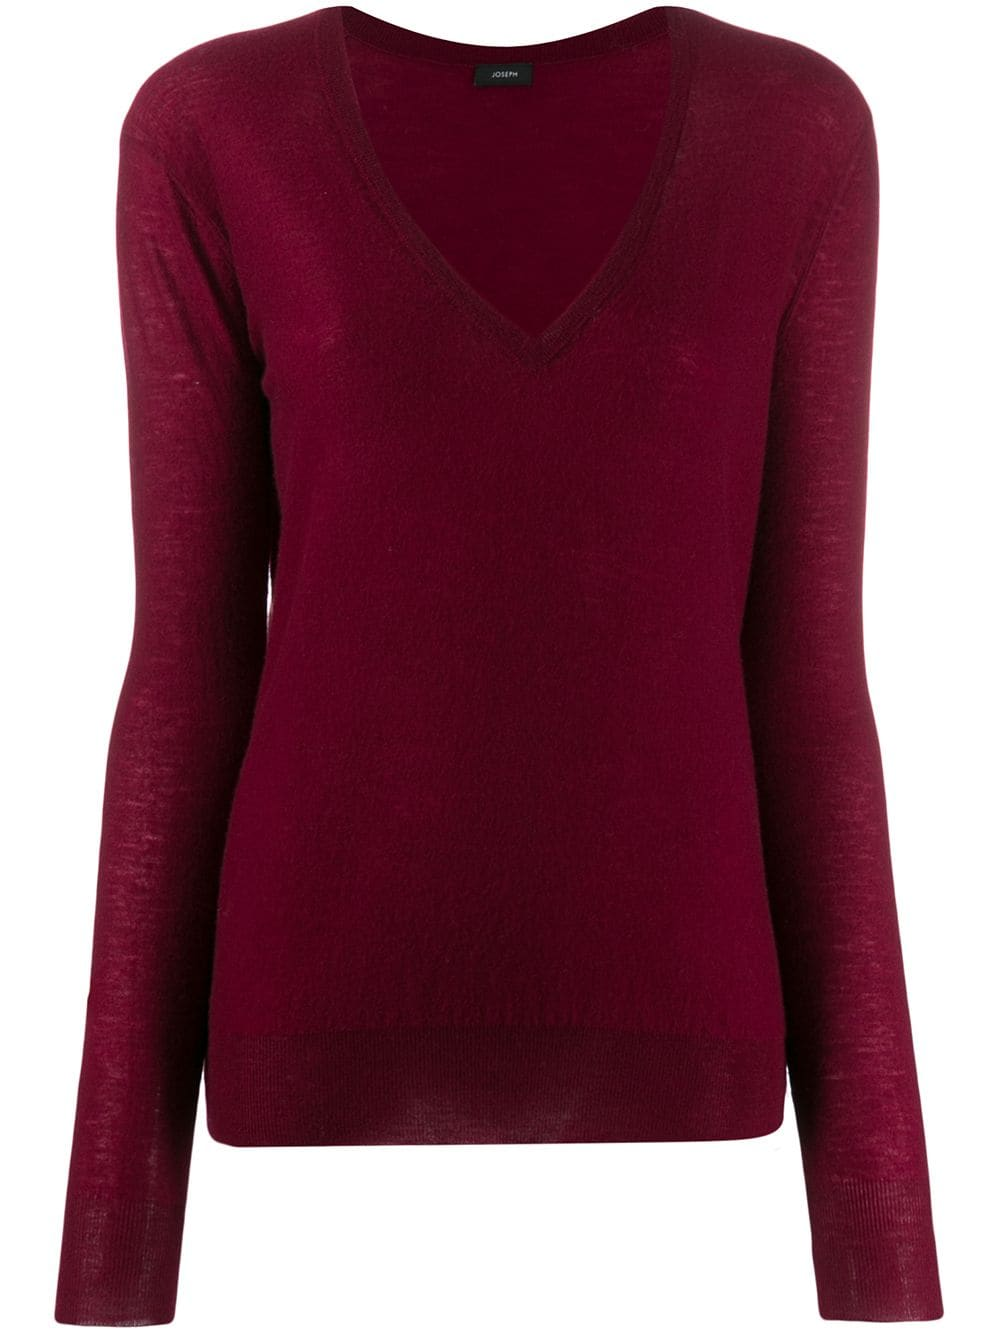 Joseph Garnet Red V Neck Cashair Knit